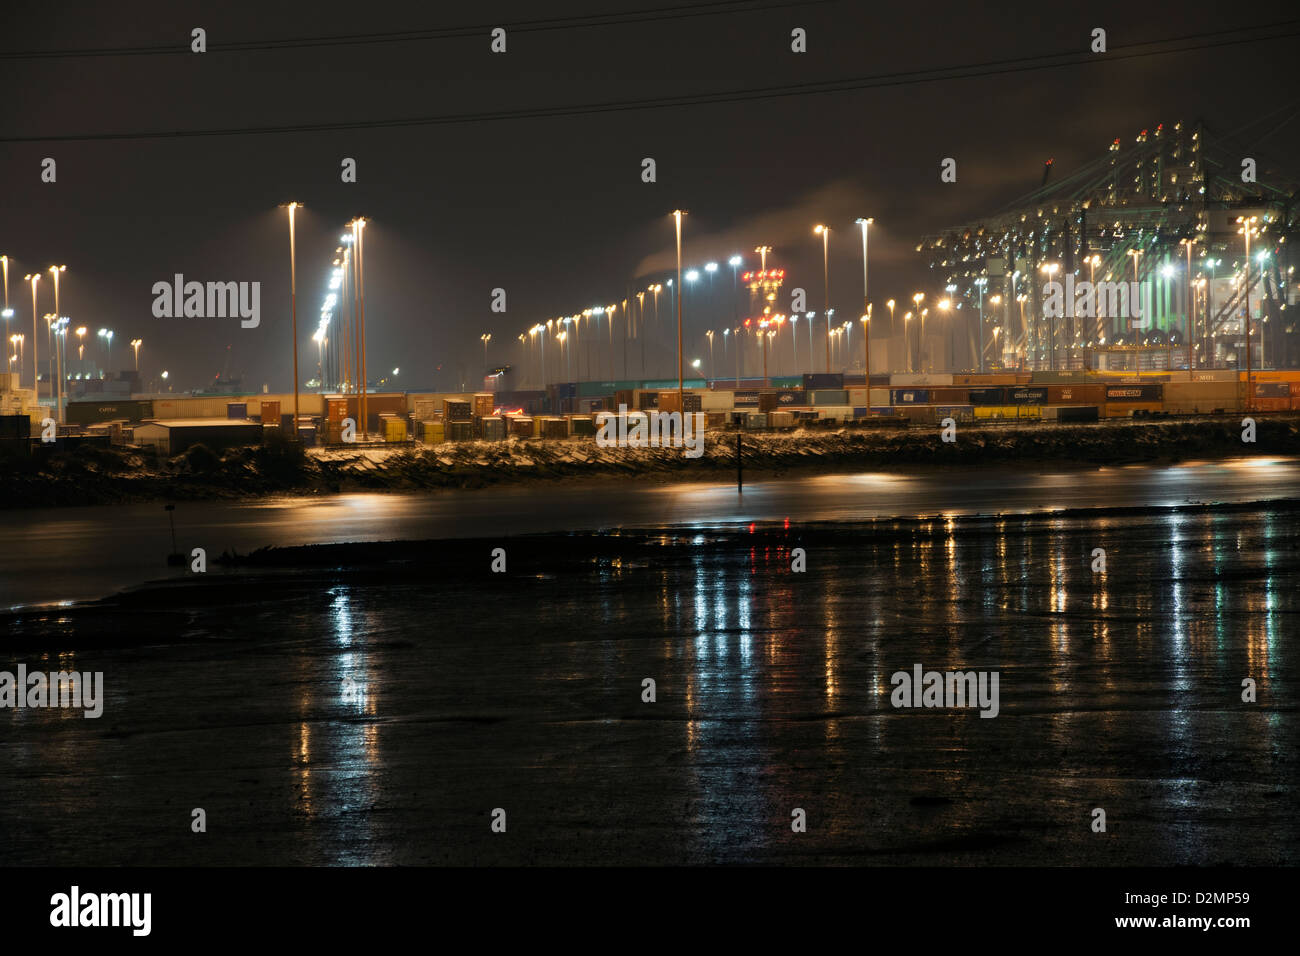 Night photograph of the Southampton Container Port, Southampton Water, Southampton, Hampshire, England, UK. - Stock Image